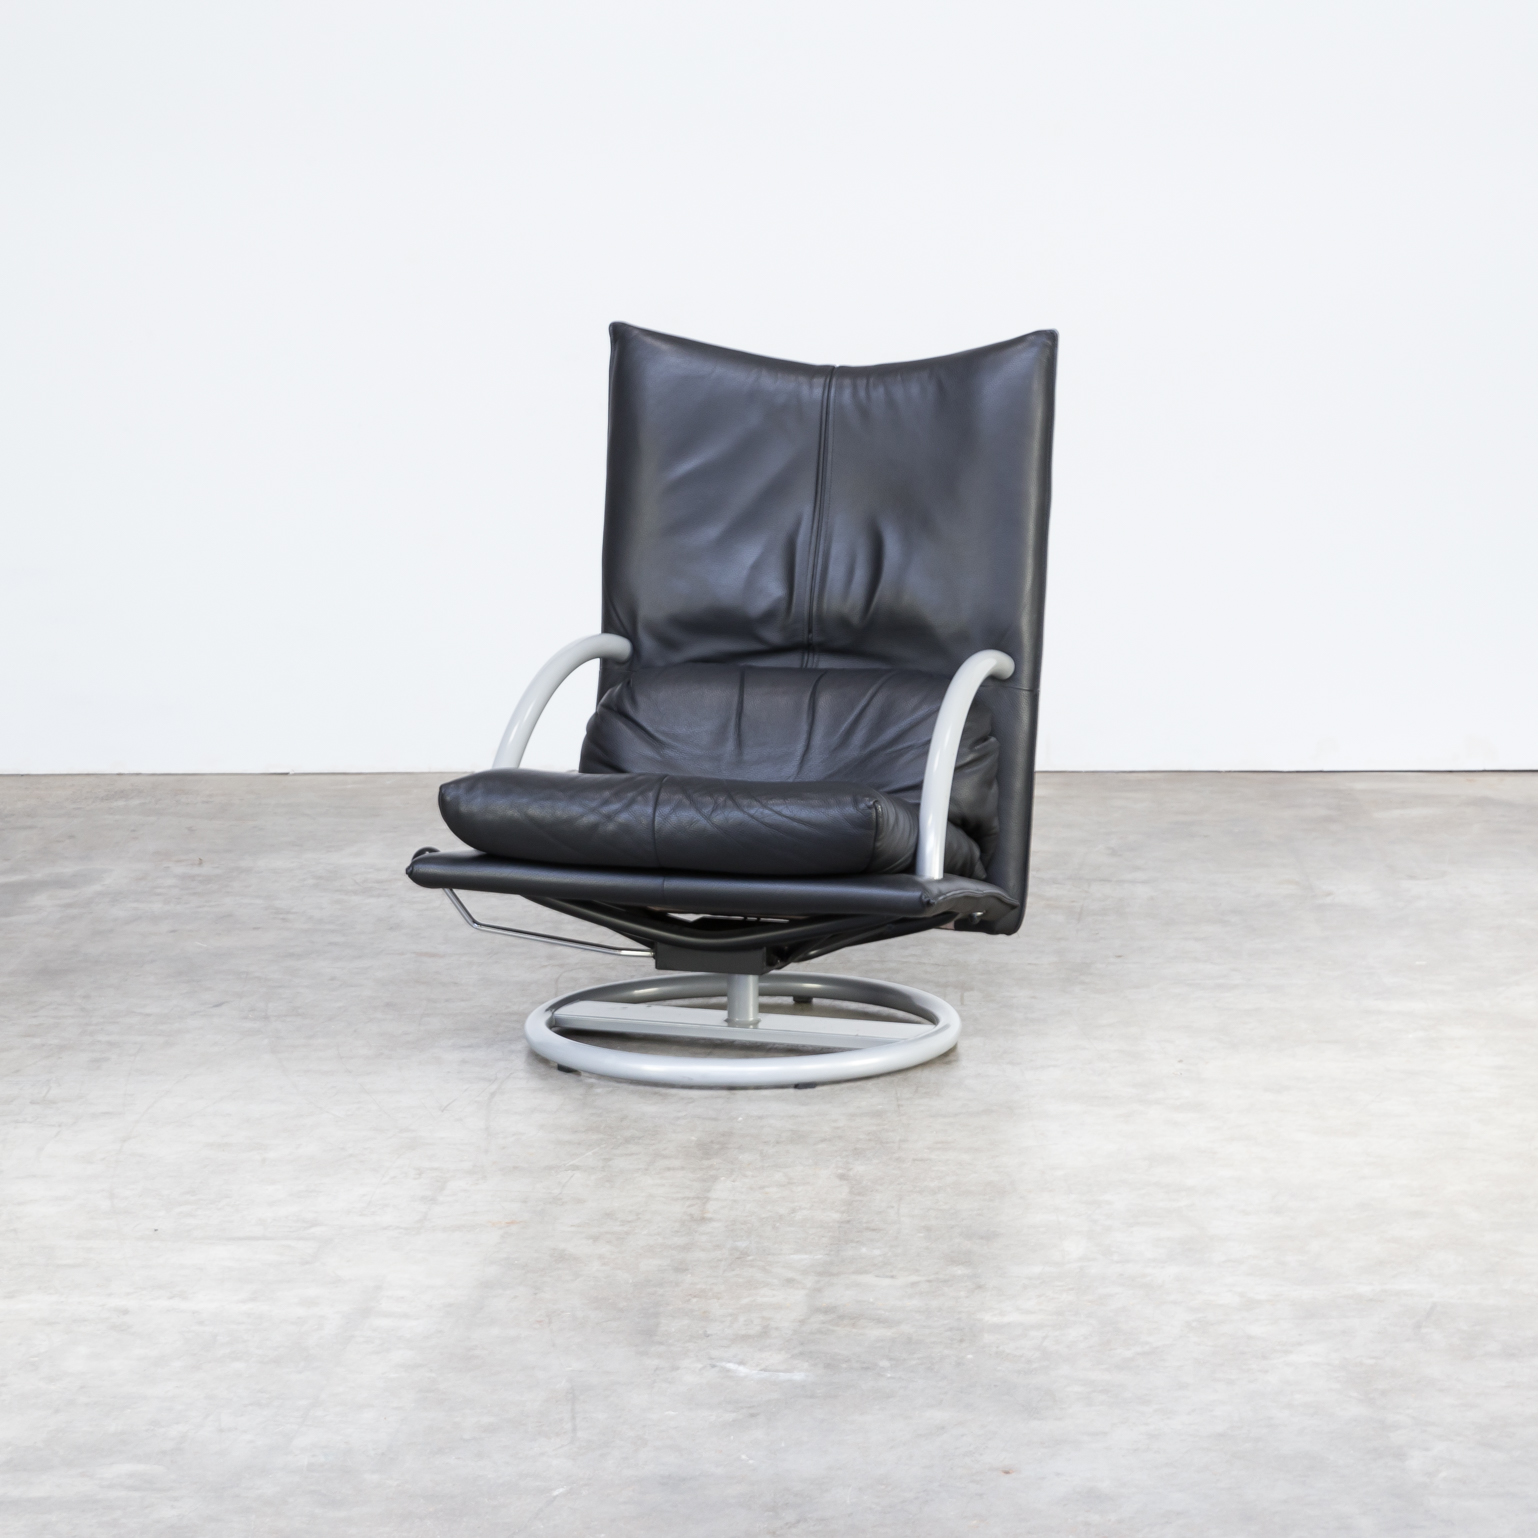 Rolf Benz Bank Vintage.90s Rolf Benz Relax Lounge Fauteuil Build On A Italian Morex Metal Frame